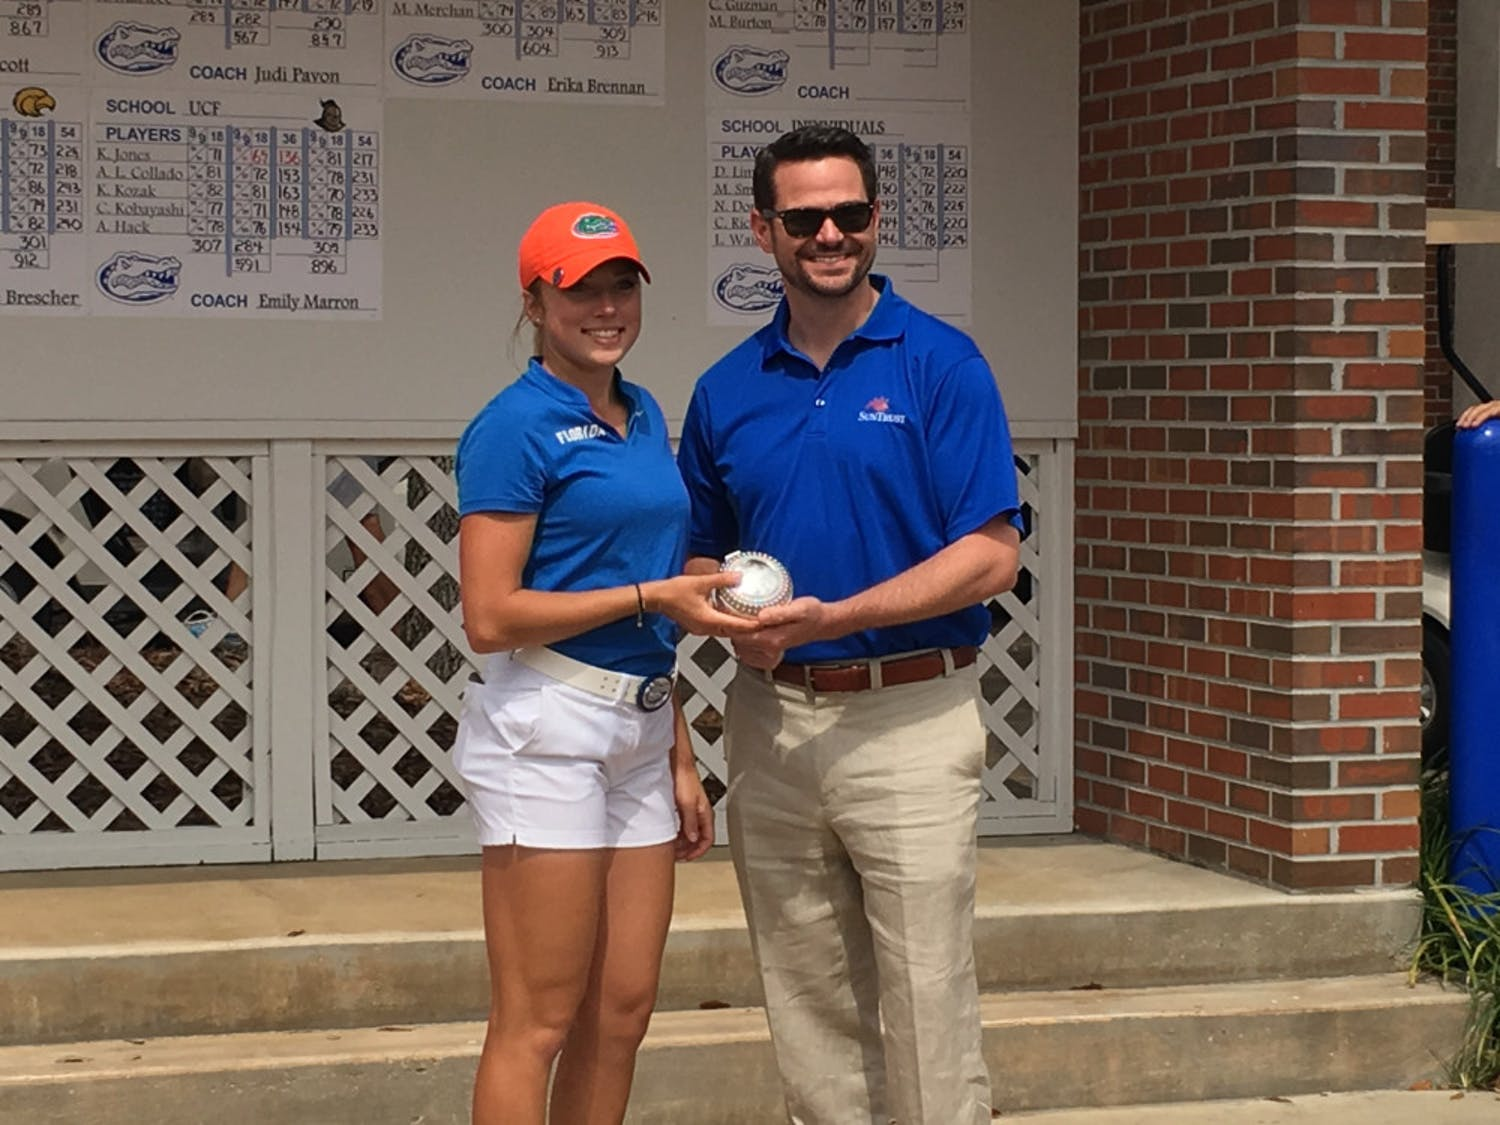 A week after winning the SunTrust Gator Invitational last weekend, sophomore Sierra Brooks carded the only under-par score for Florida in the first round of theEvans Derby Experience in Auburn, Alabama.